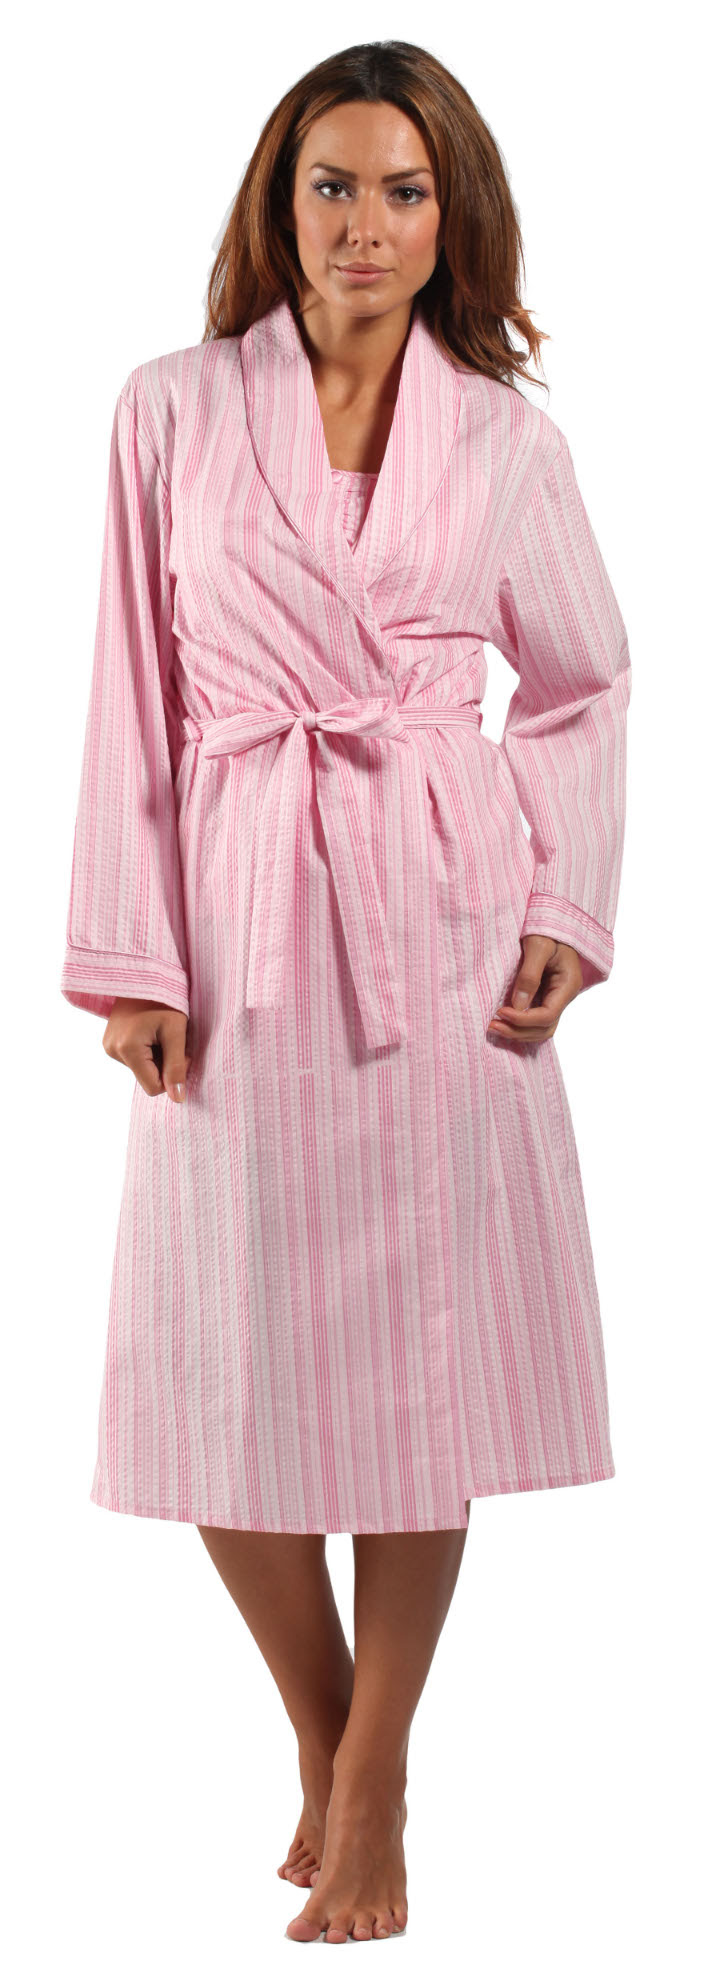 Thin Cotton Dressing Gowns Ladies | Insured Fashion